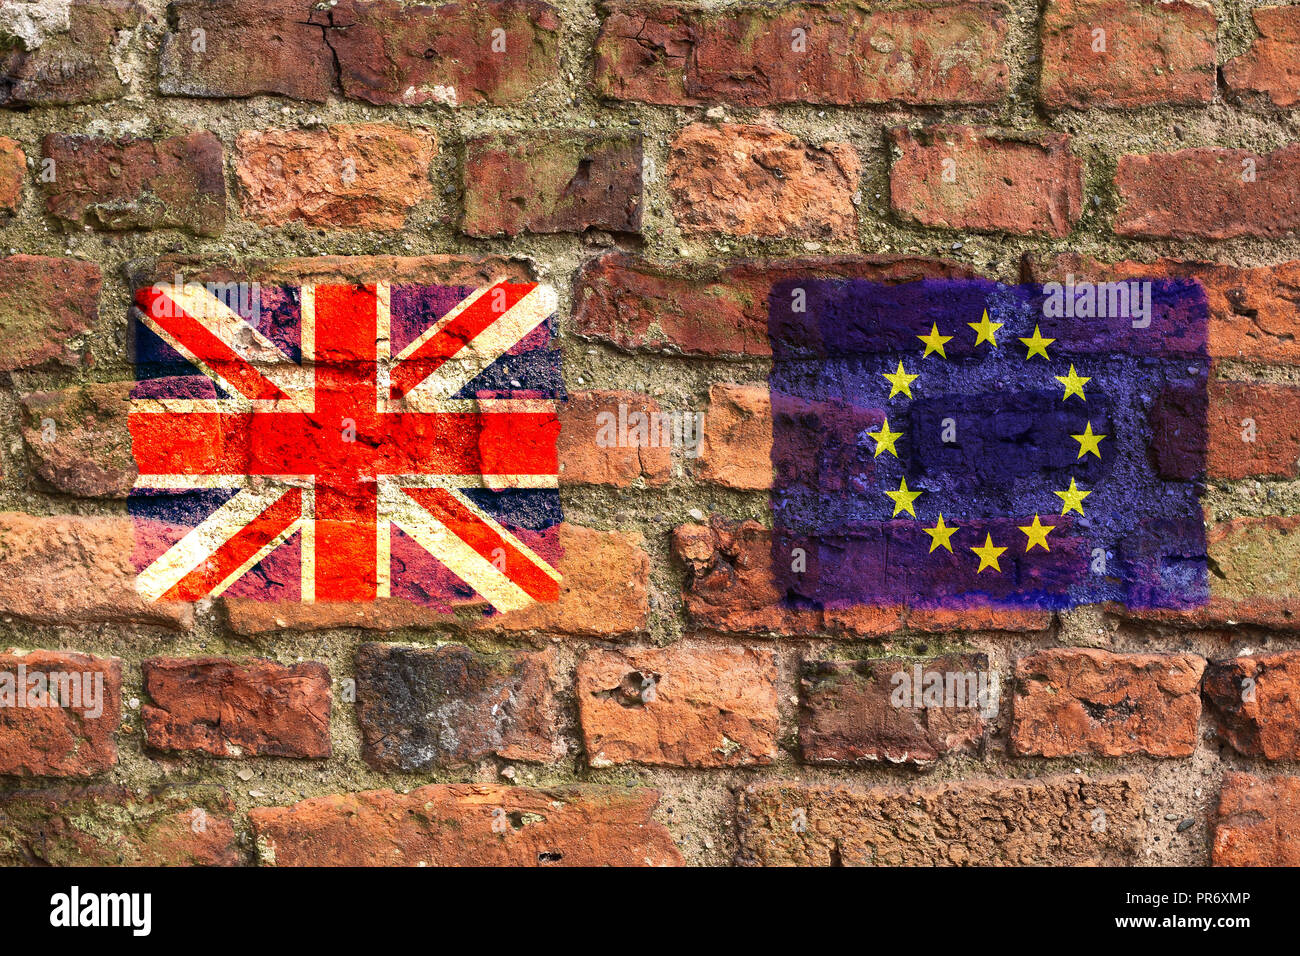 United Kingdom Union Jack and the European Union flags on a brick wall.  Concept that brexit negotiations have hit a brick wall. - Stock Image